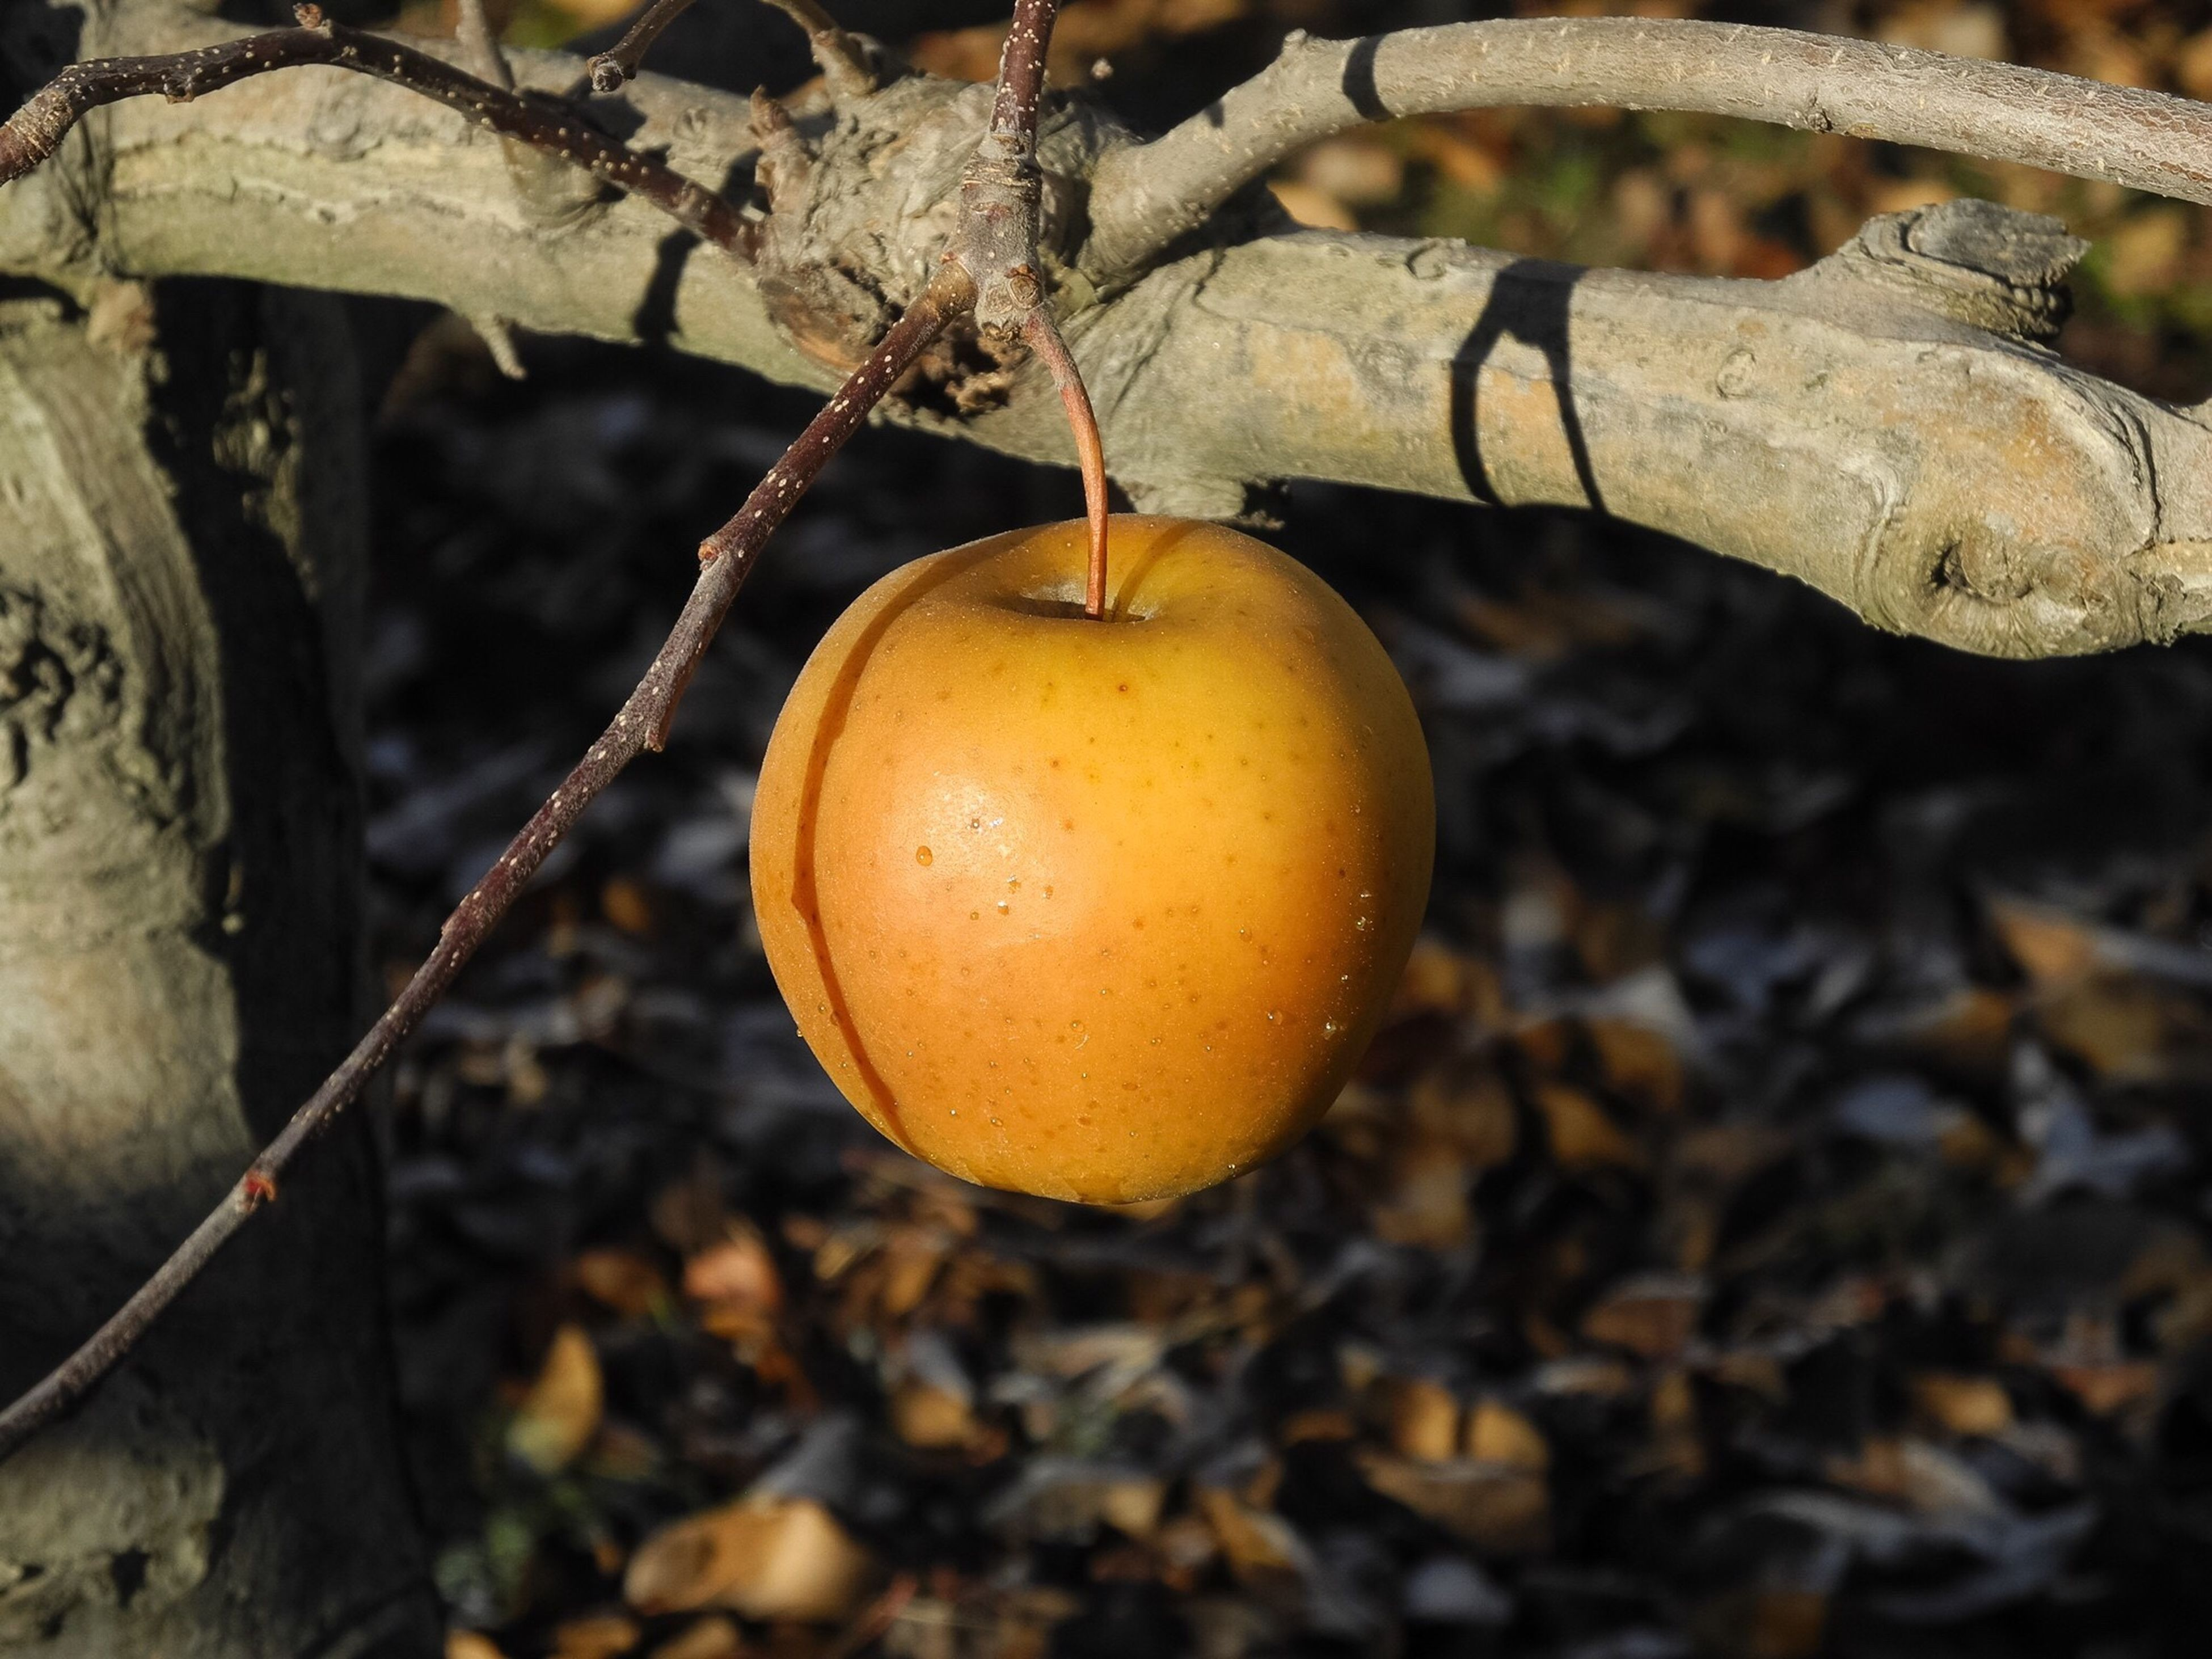 fruit, tree, food, food and drink, leaf, nature, branch, no people, outdoors, close-up, healthy eating, growth, day, beauty in nature, freshness